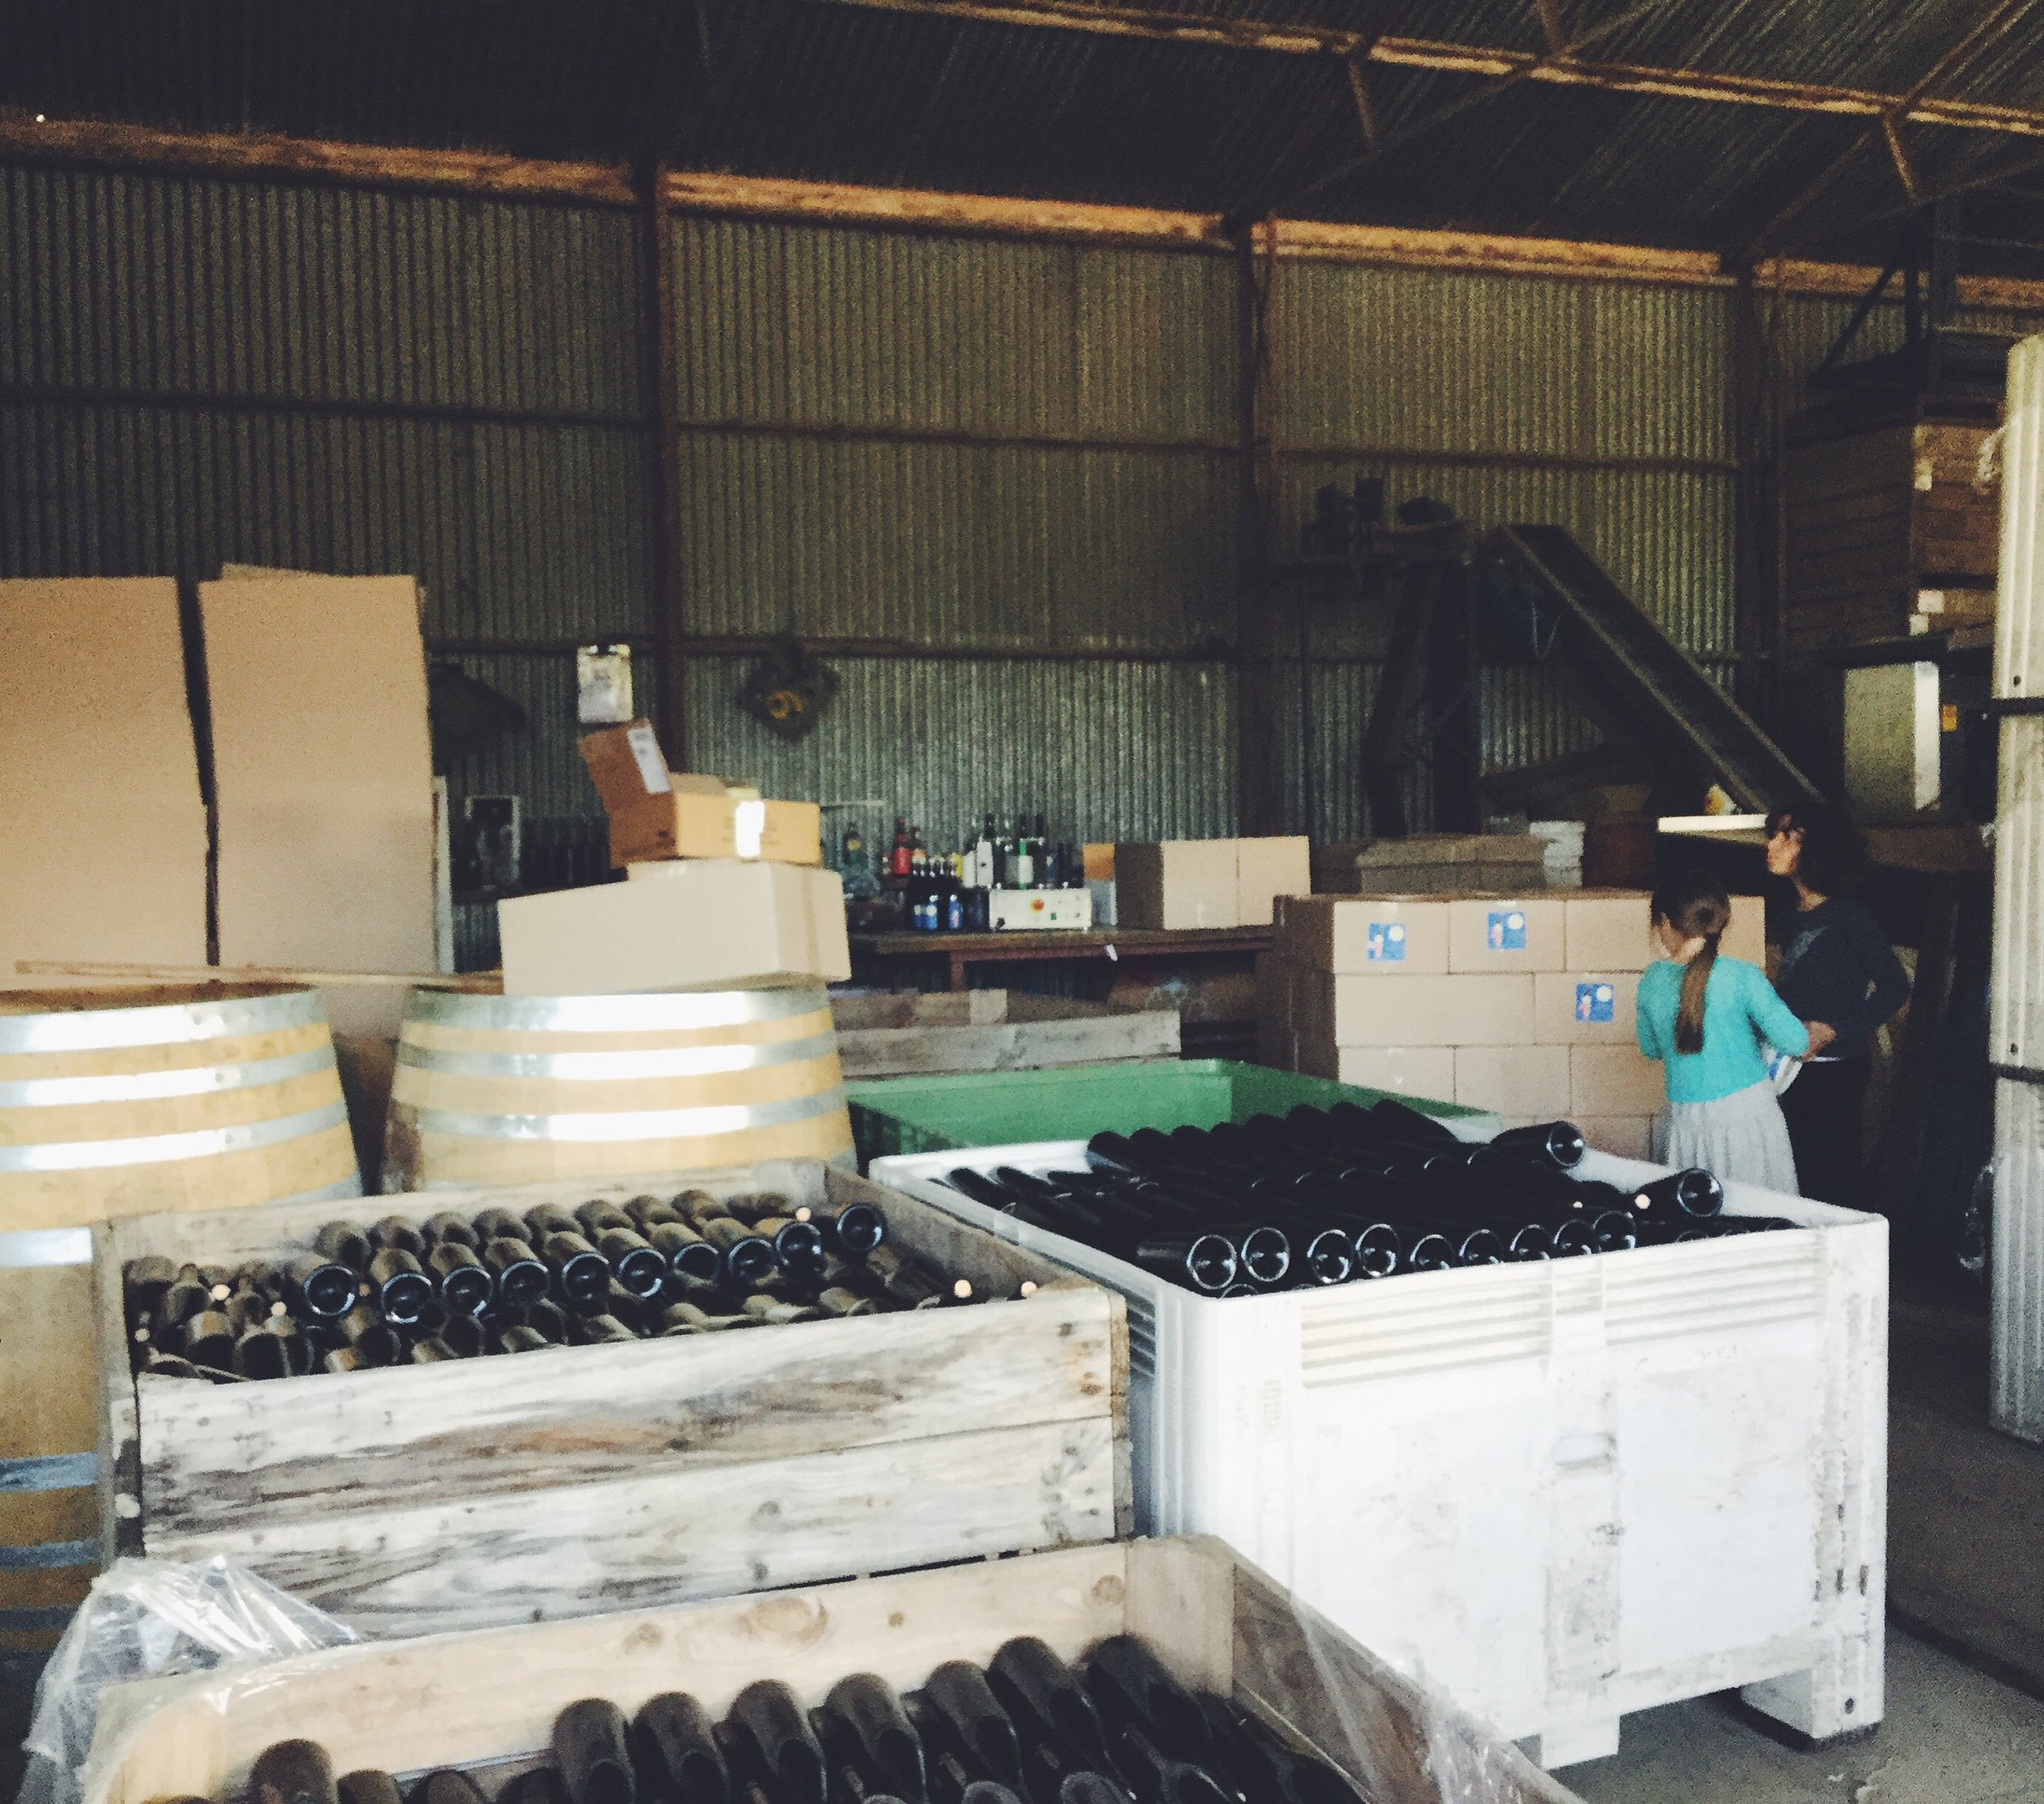 The other Right - Wine - Bottling